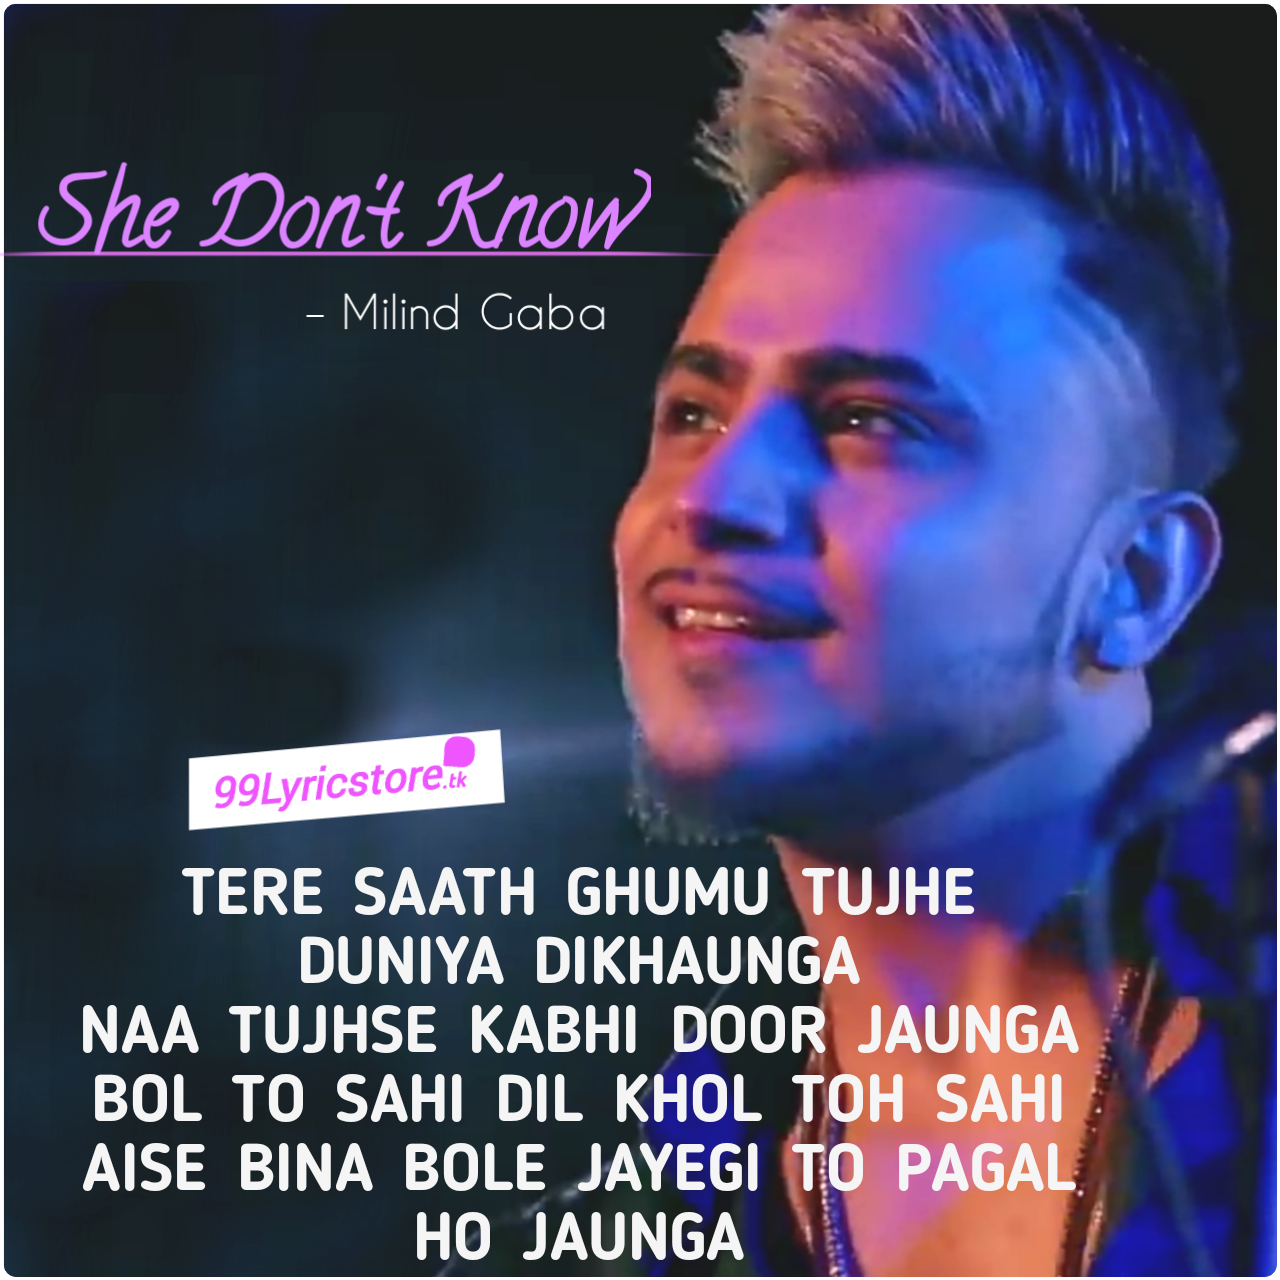 She Don't Know Lyrics, She Don't Know Lyrics Milind Gaba, Milind Gaba Song Lyrics, Milind Gaba Song She Don't Know Lyrics, Latest Punjabi Song Millind Gaba Lyrics, New Song She Don't Know Milind Gaba Lyrics, She Don't Know Milind Gaba Images